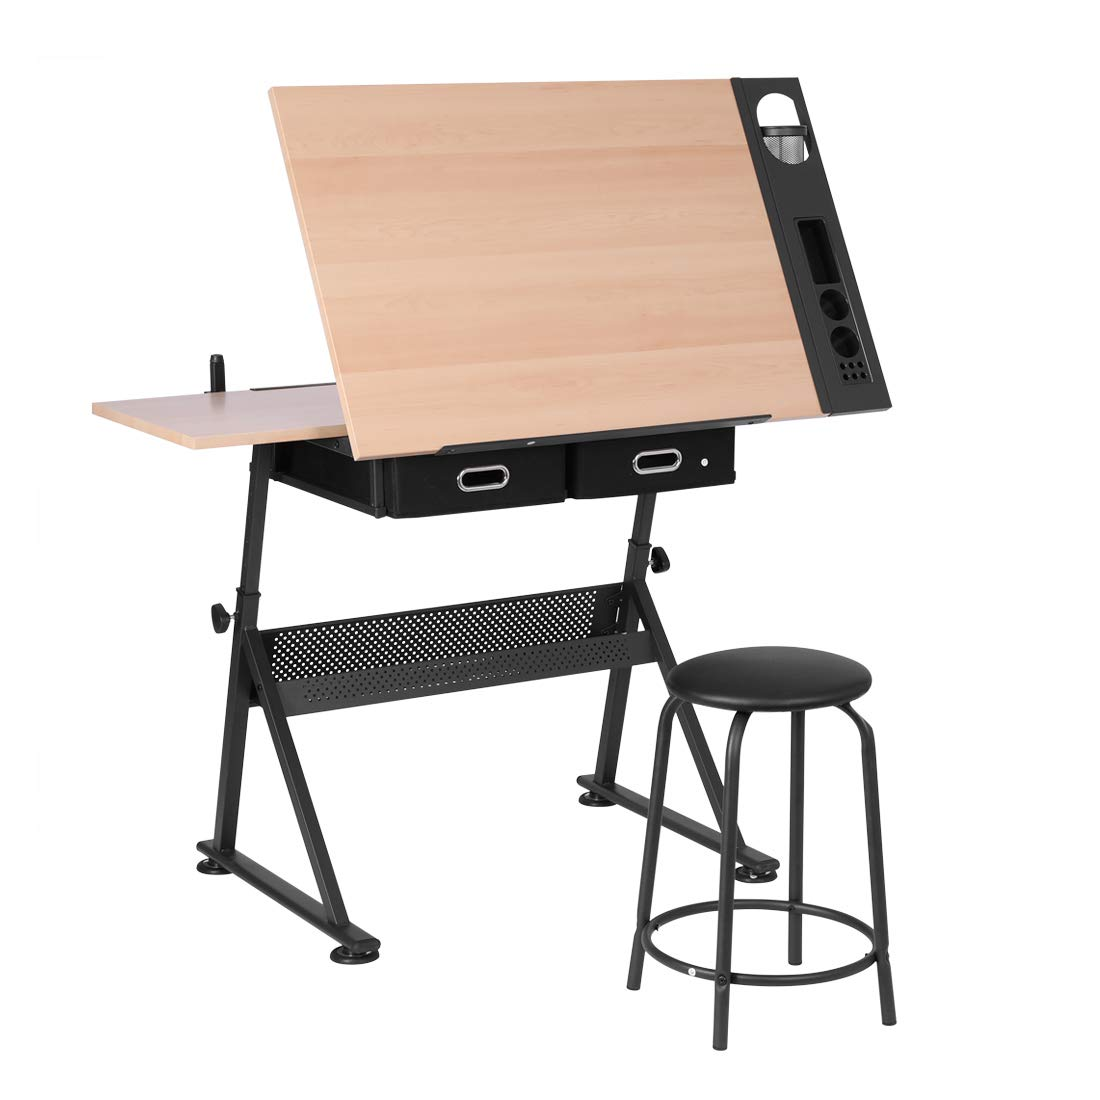 VIVOHOME Adjustable Height Drafting Desk Drawing Table with 2 Storage Drawers and Stool for Kids Adults Artists by VIVOHOME